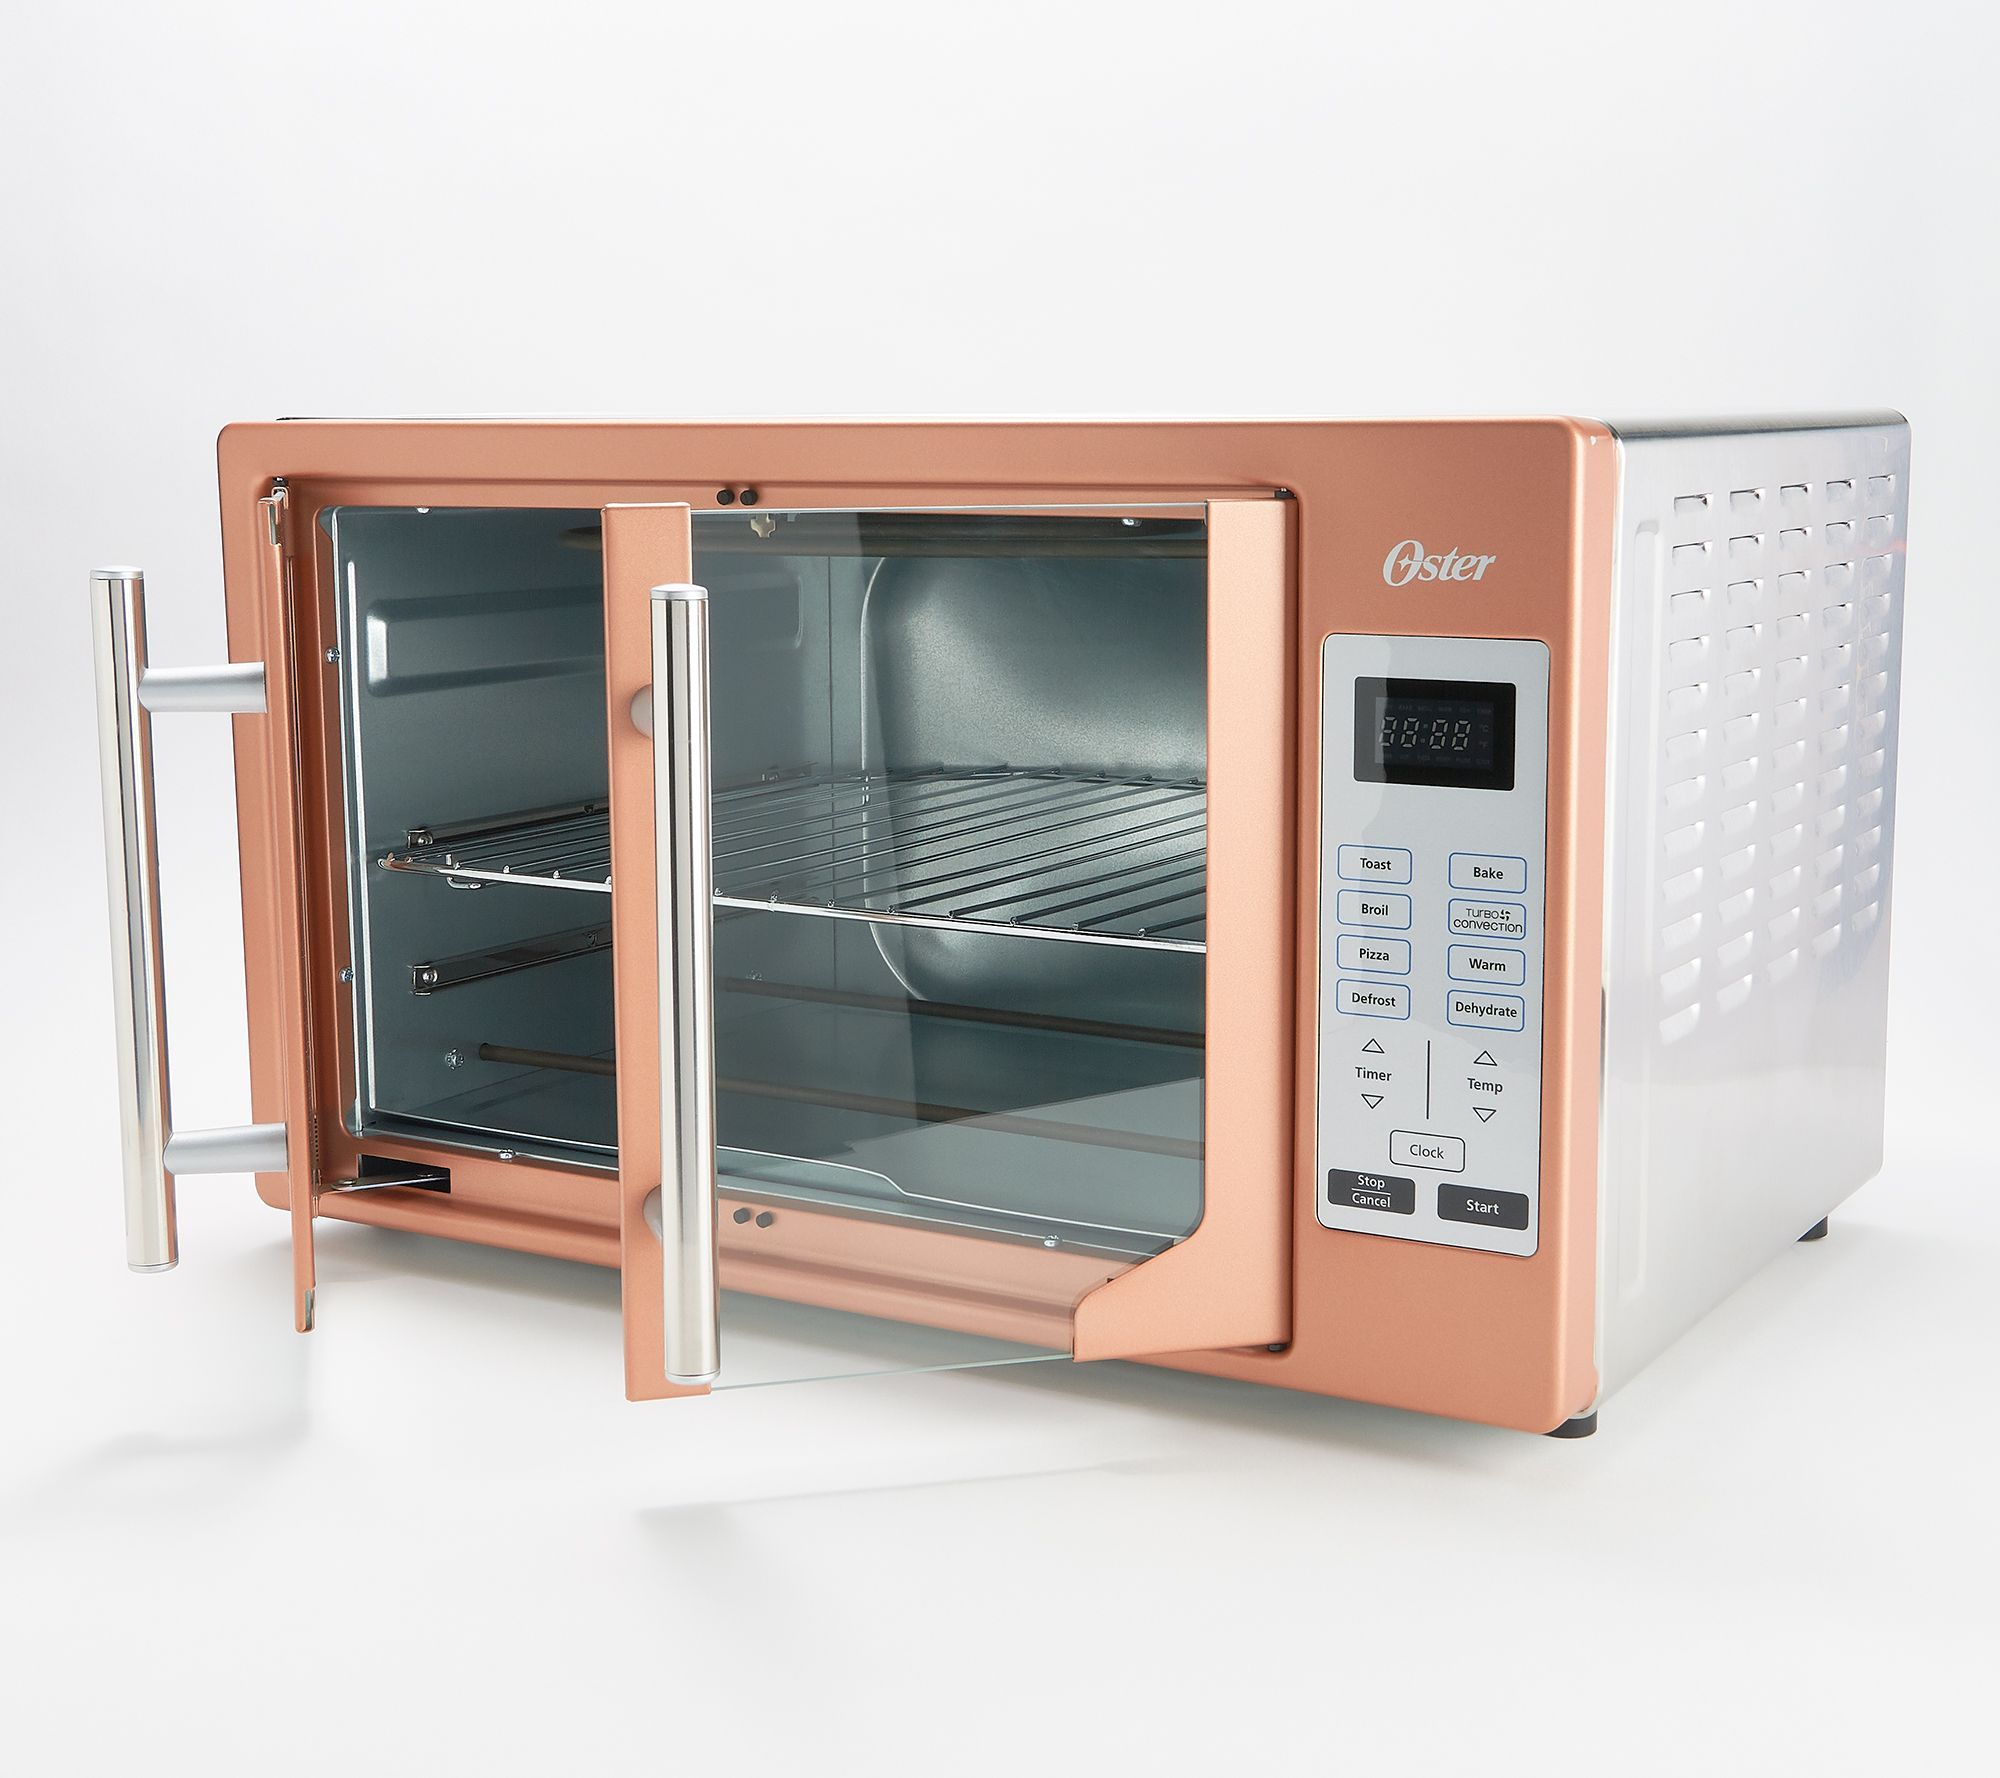 Oster Xl Digital Convection Oven W French Doors Qvc Com Convection Oven Convection French Doors